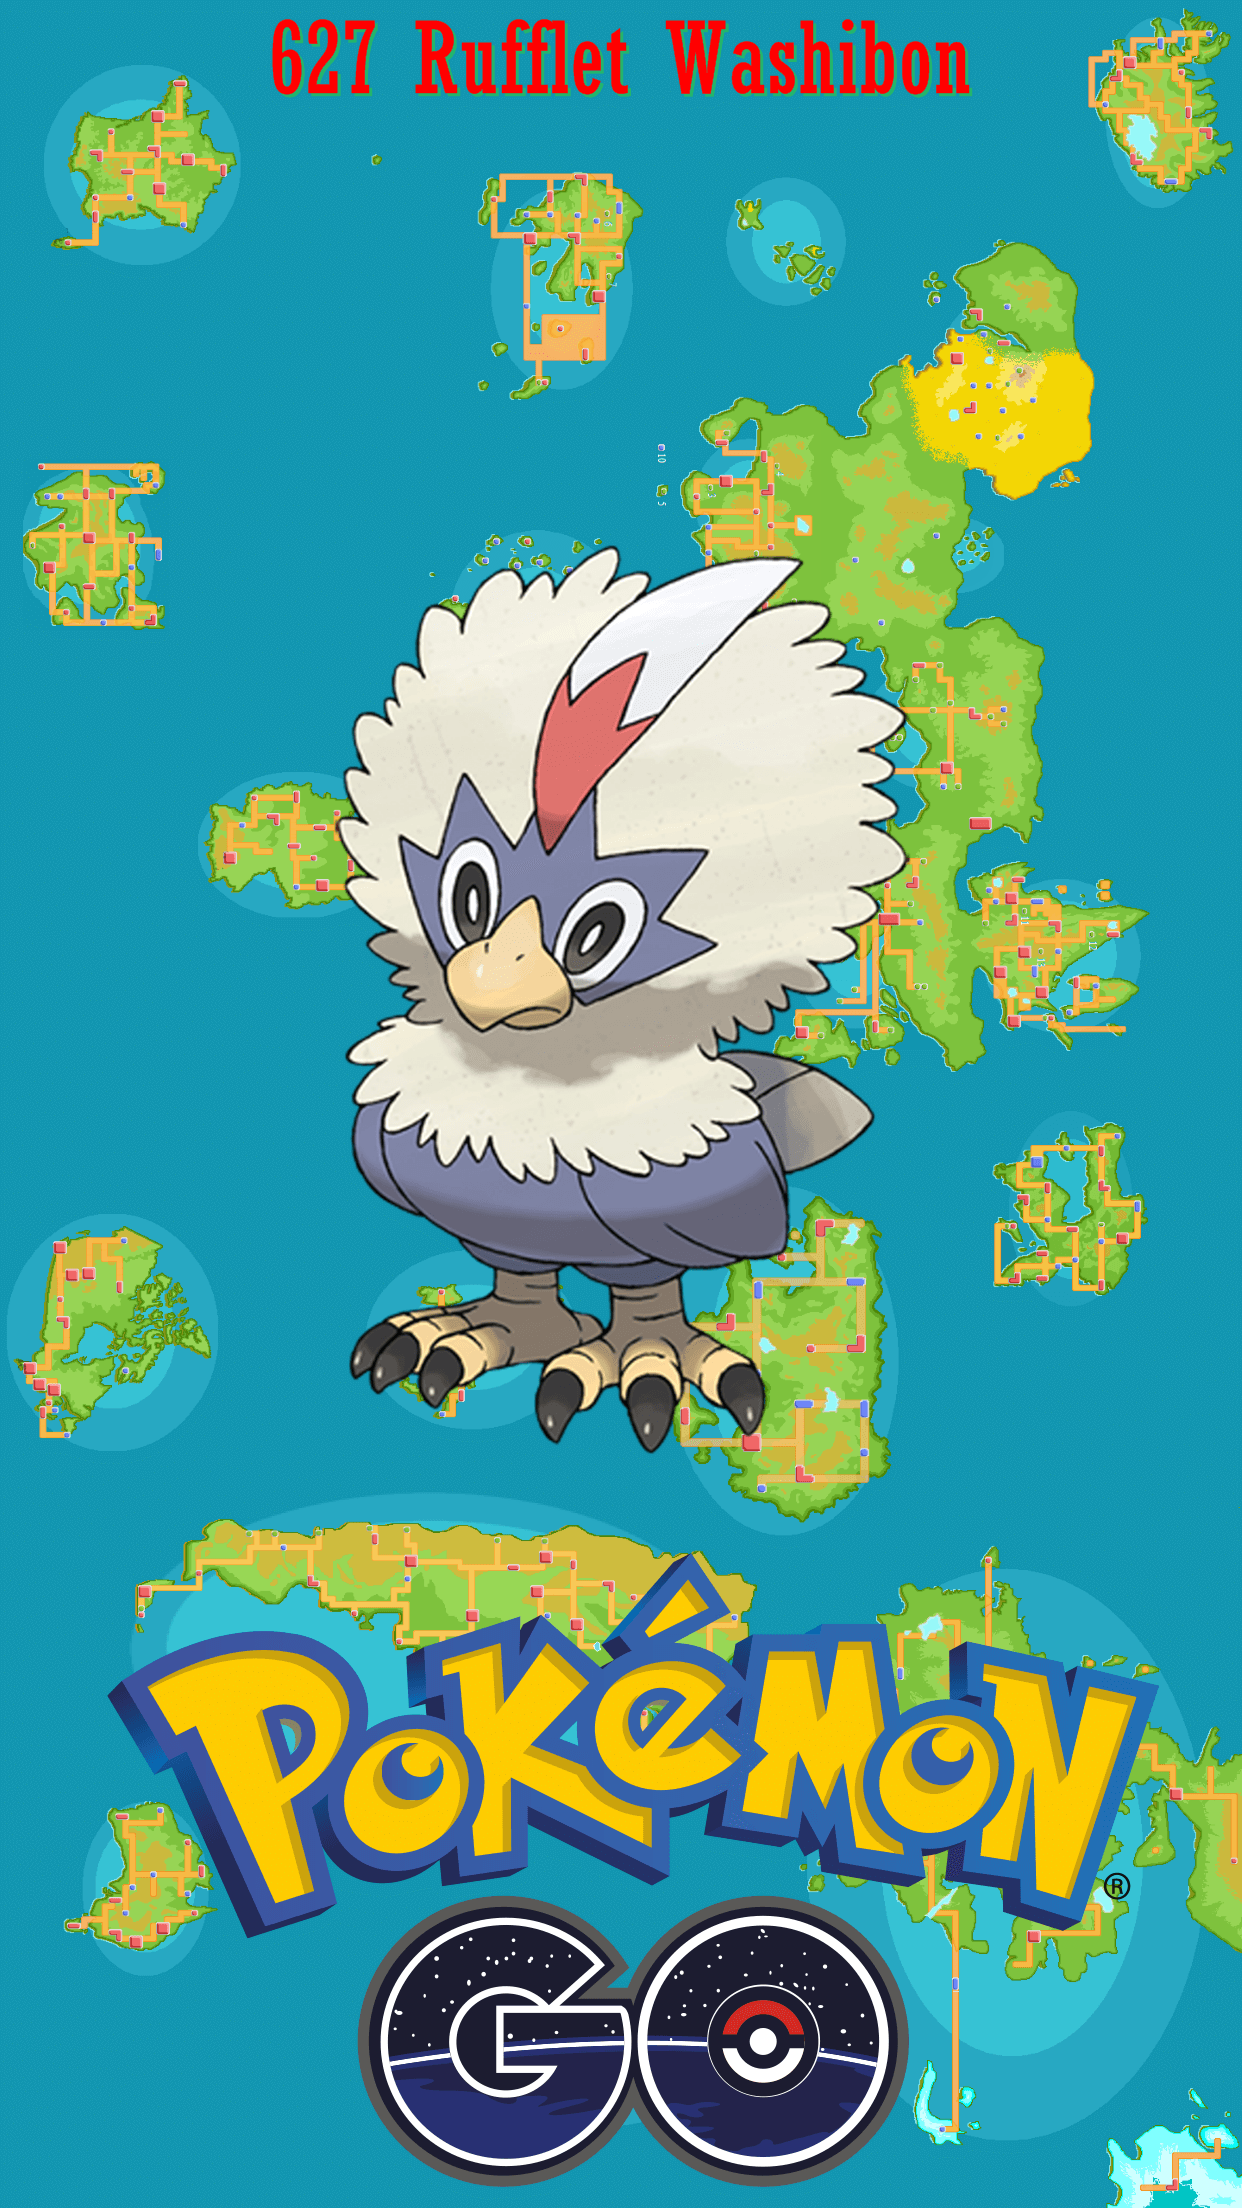 627 Street Map Rufflet Washibon - 627 Street Map Rufflet Washibon | Wallpaper - Rufflet HD Wallpapers